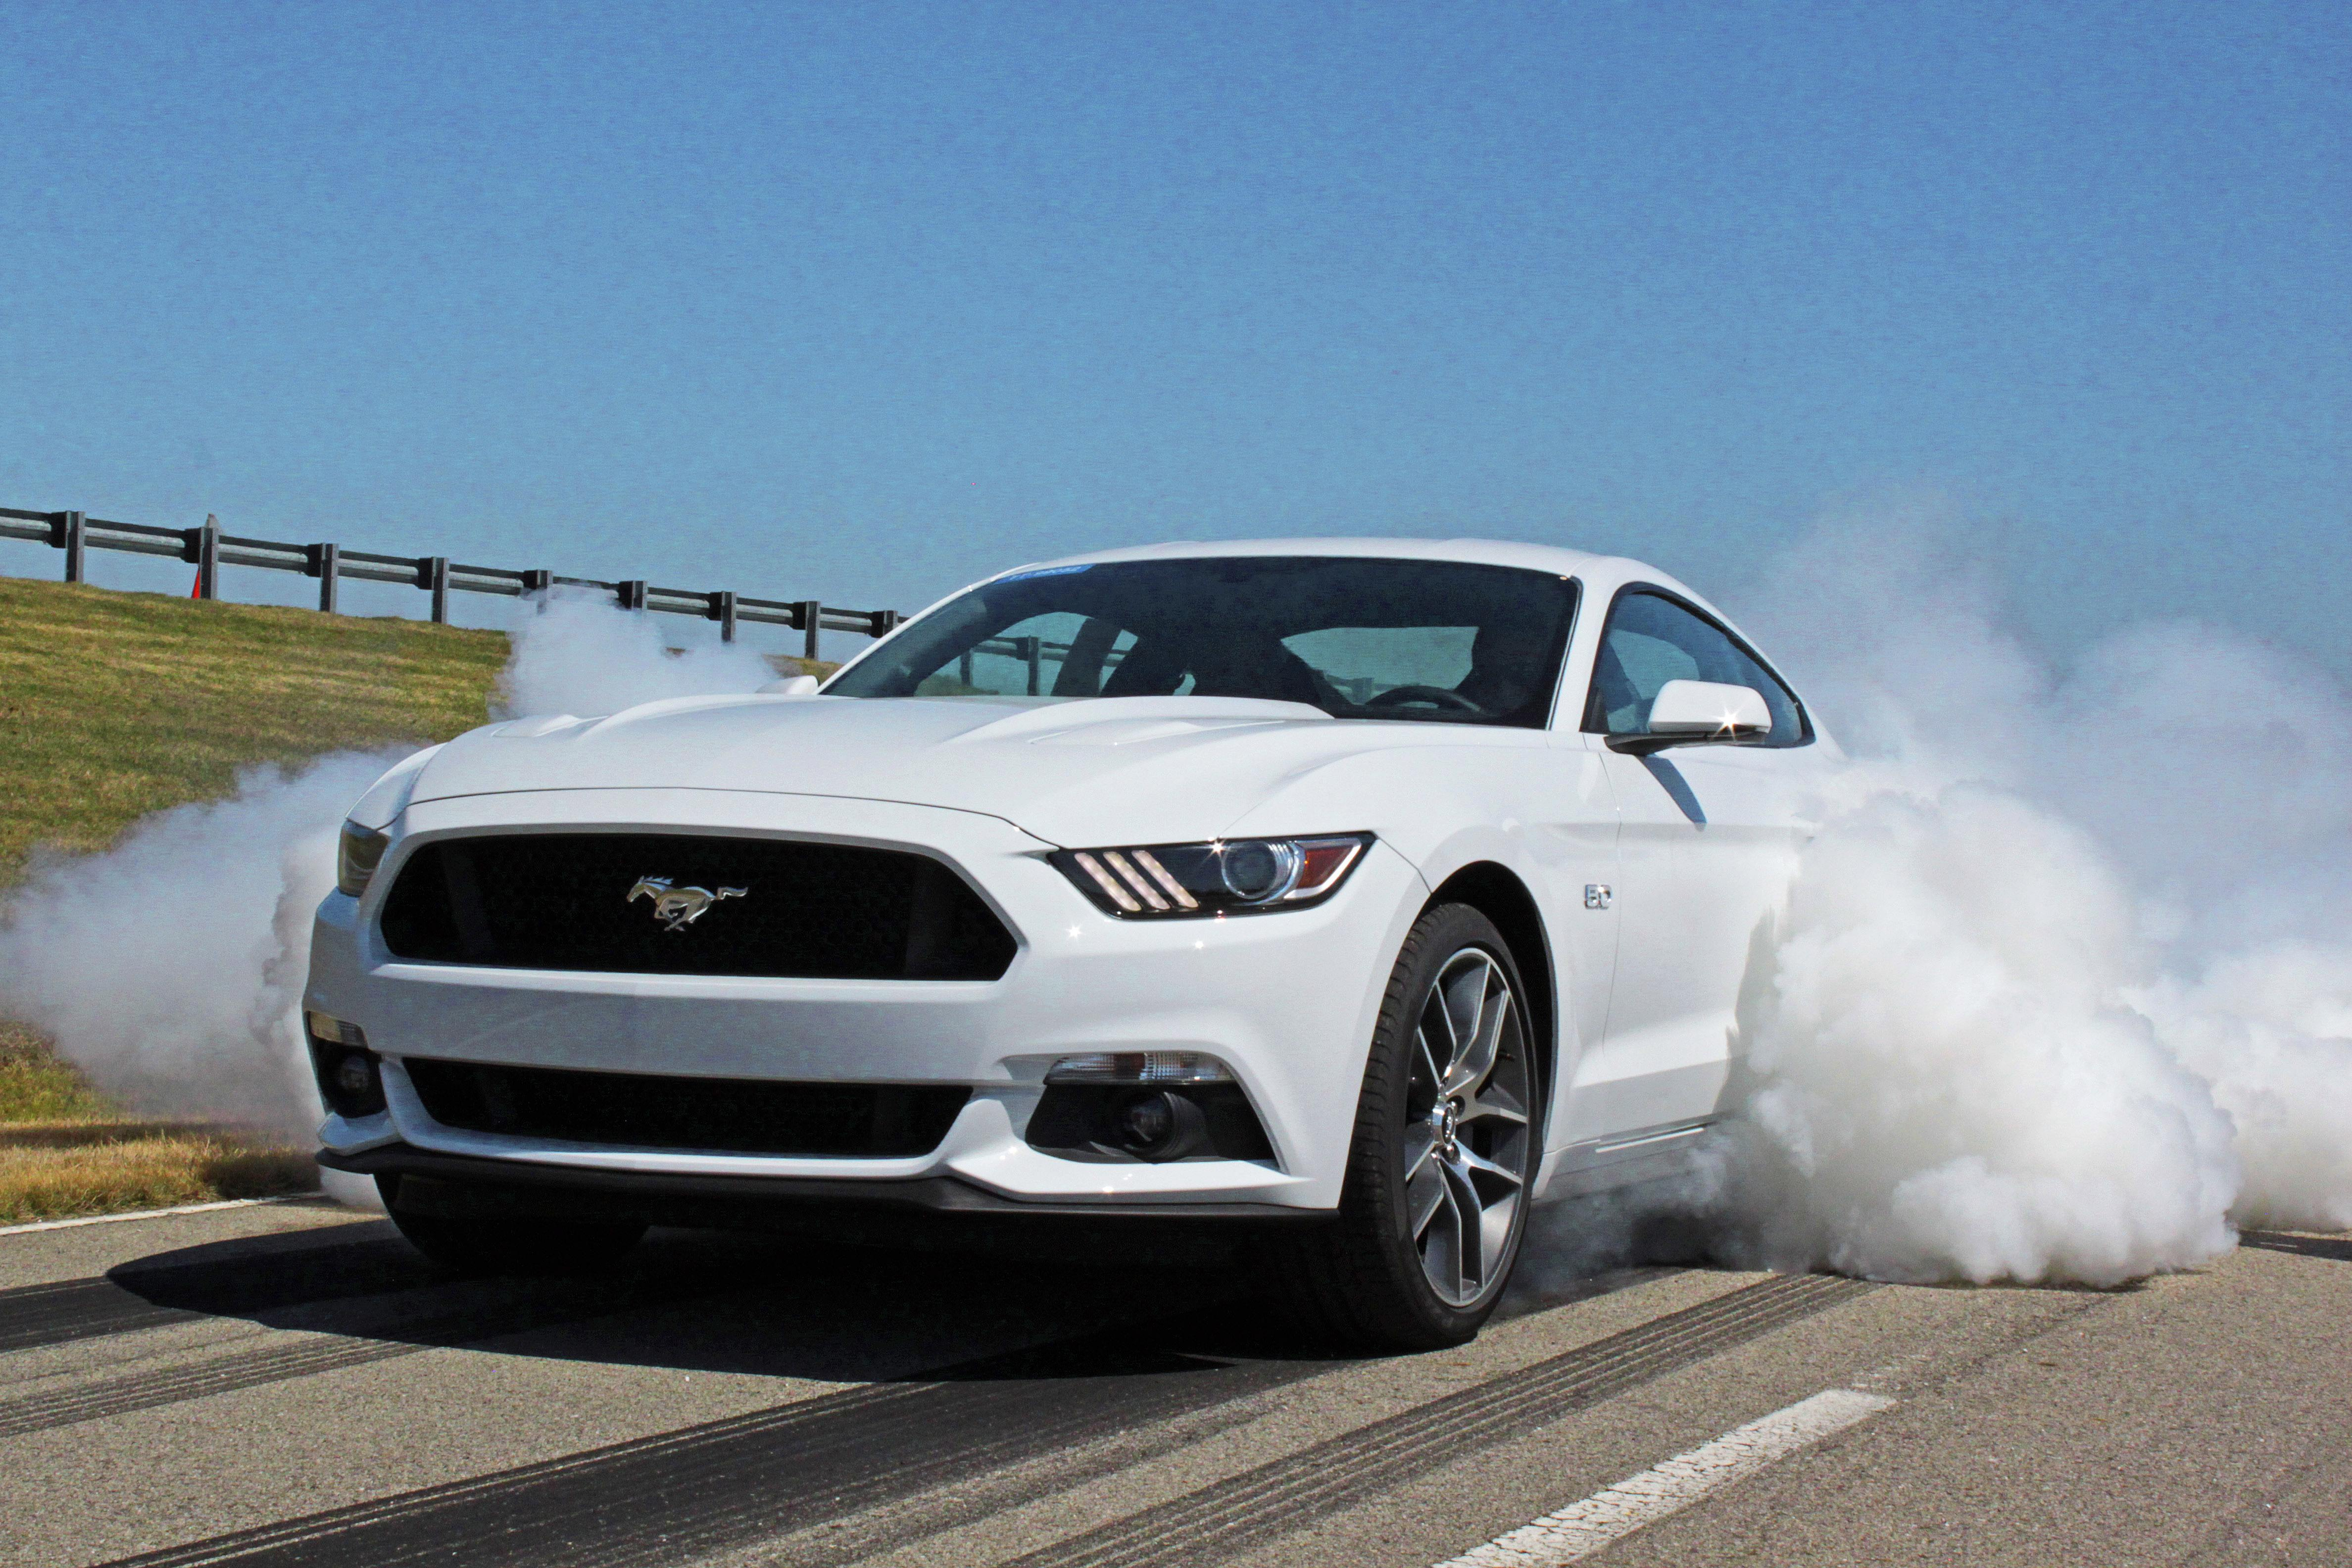 Ford Mustang GT electronic line-lock